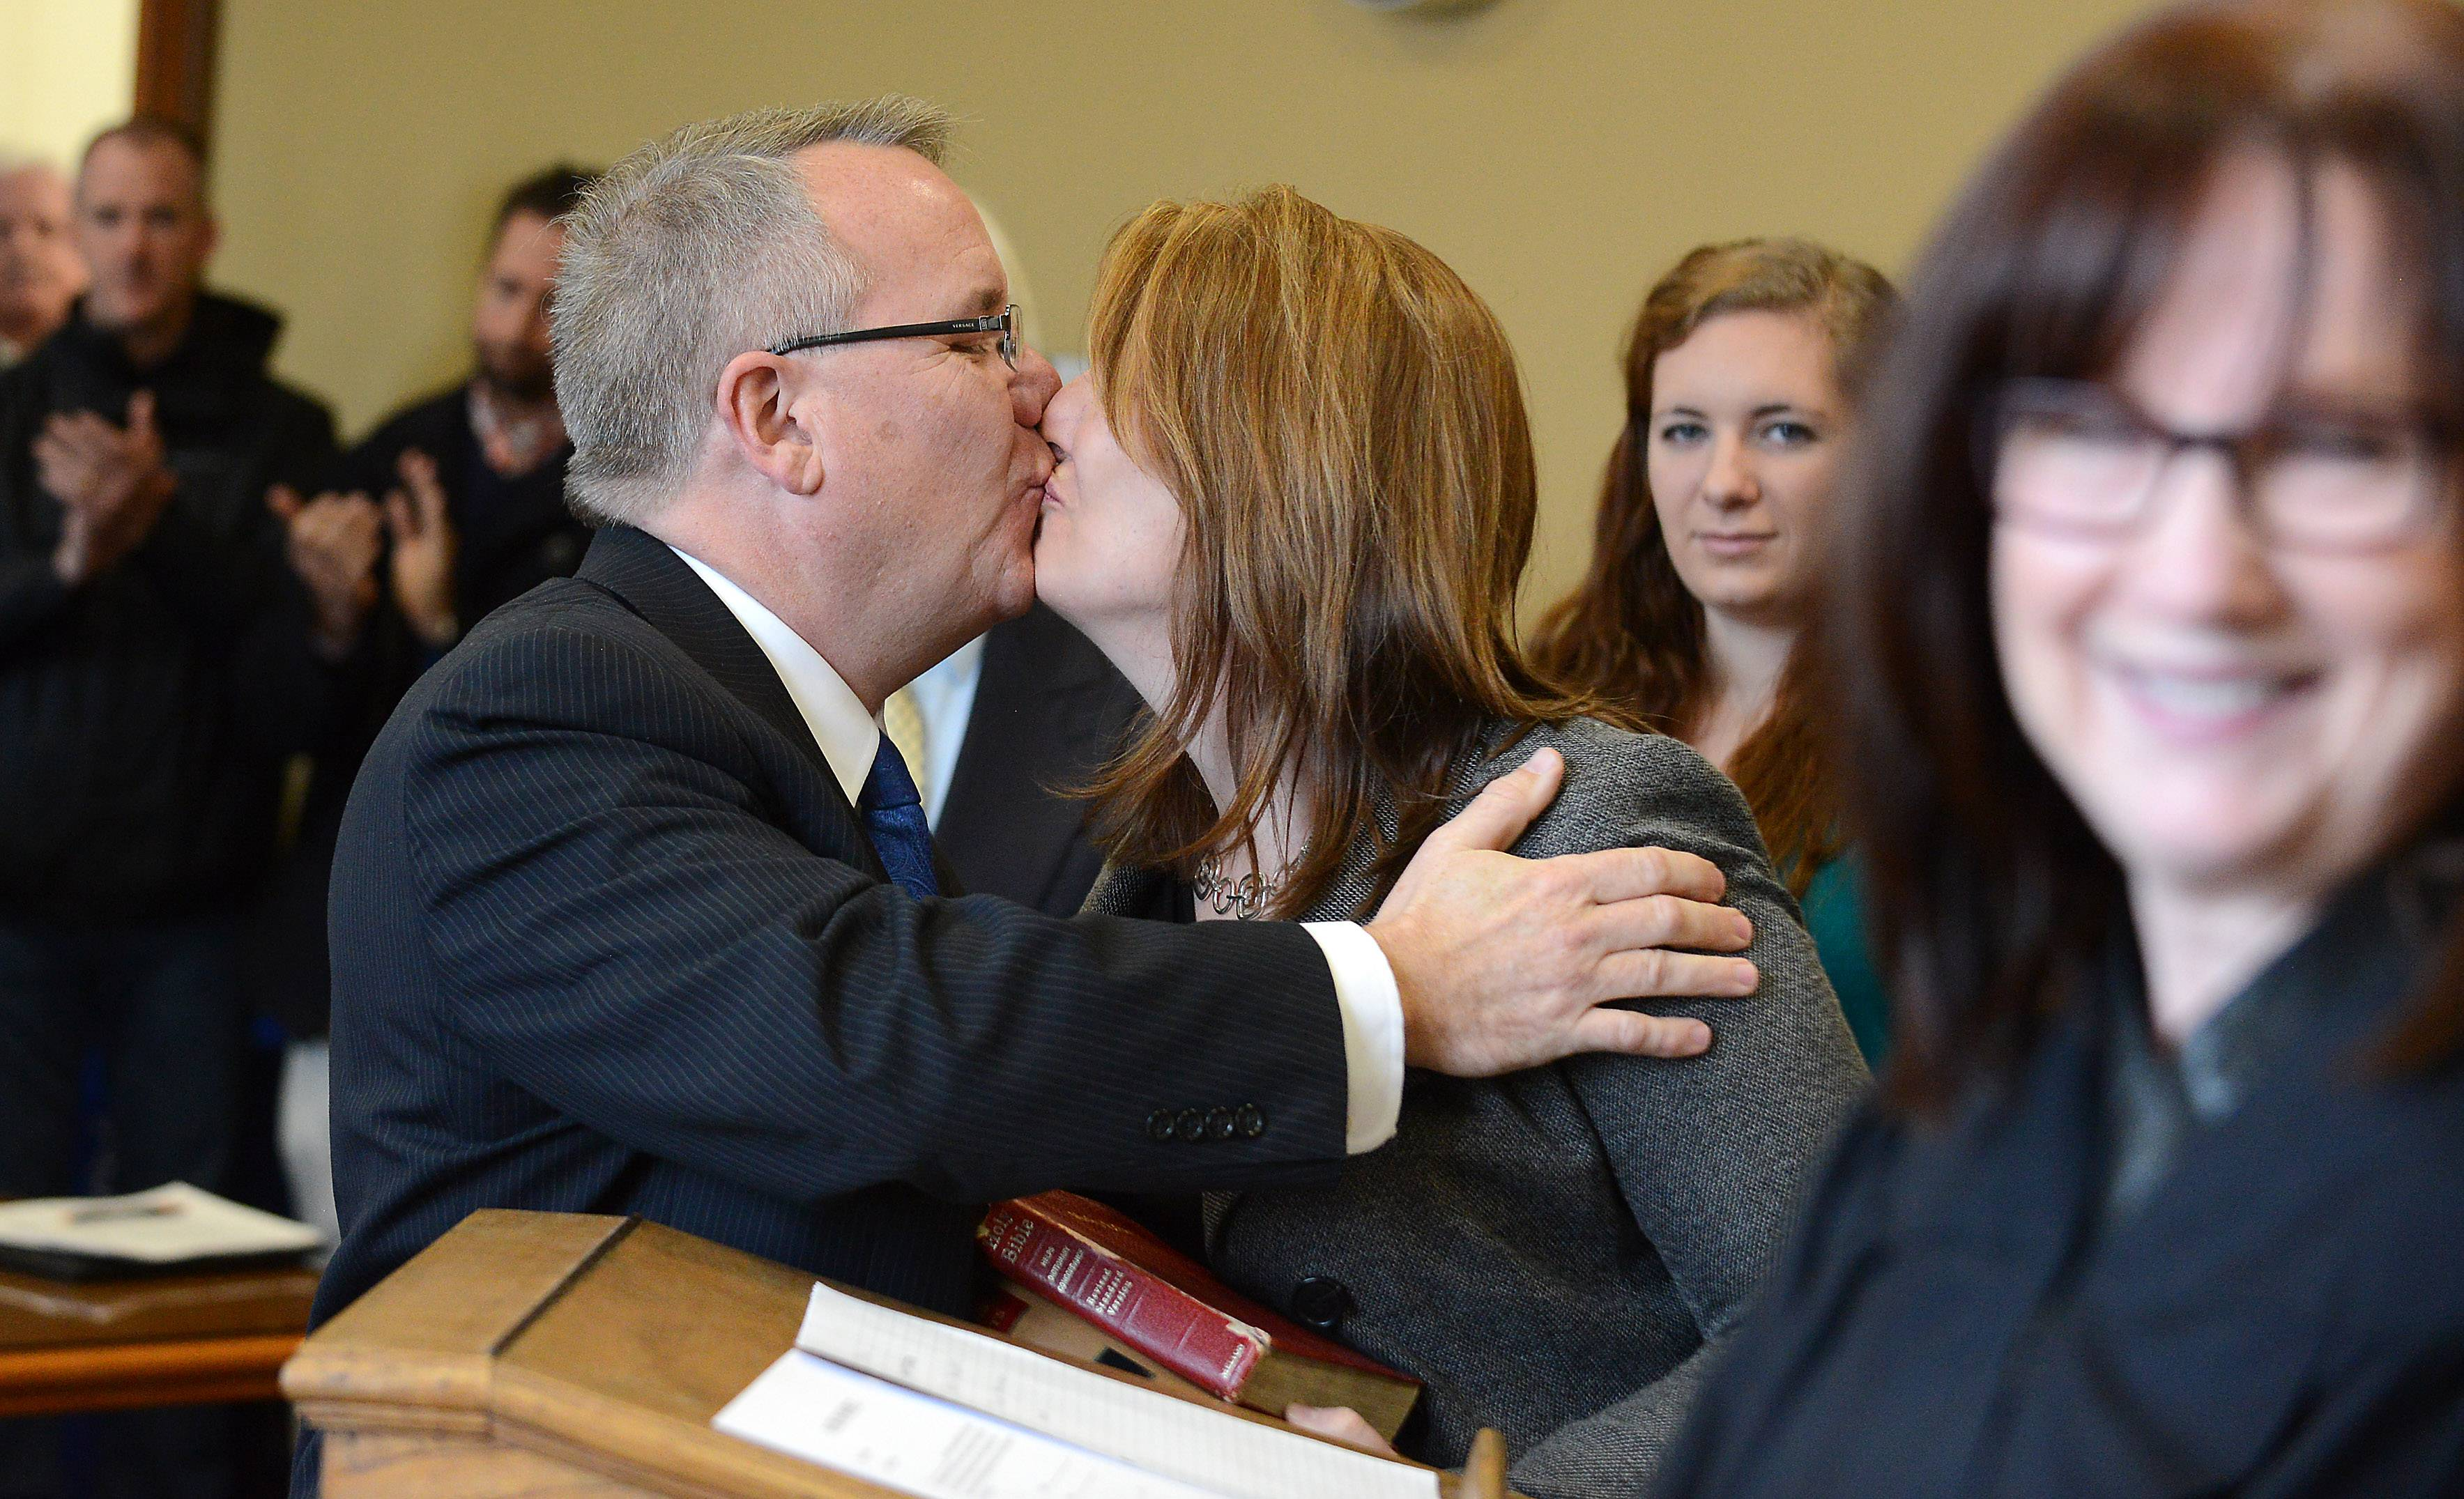 Recently elected state Rep. Steve Andersson kisses his wife, Nanette, after he was sworn in at the Kane County Courthouse in Geneva Friday. He was sworn in by Kane County Associate Judge Linda Abrahamson, right, a law school classmate at Northern Illinois University.